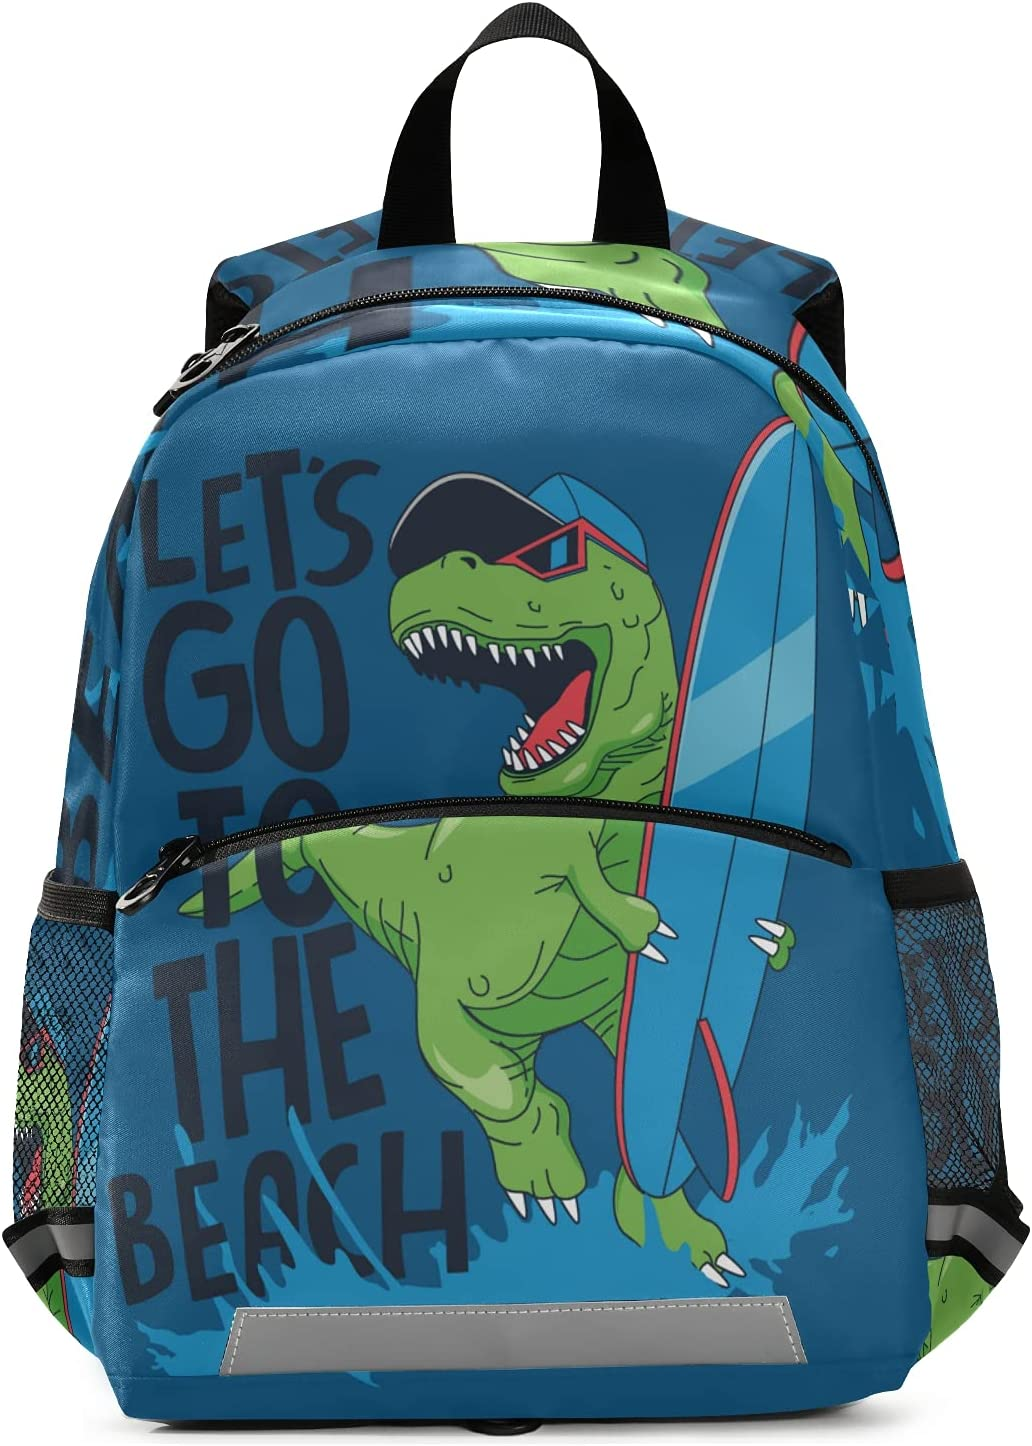 Surfing Dino Backpack for Boys and Girls Kid's Preschool Nursery Book bags Toddlers Kindergarten Schoolbags with Chest Clip and Safety Leash Children Daycare Bag Perfect Size for School and Travel